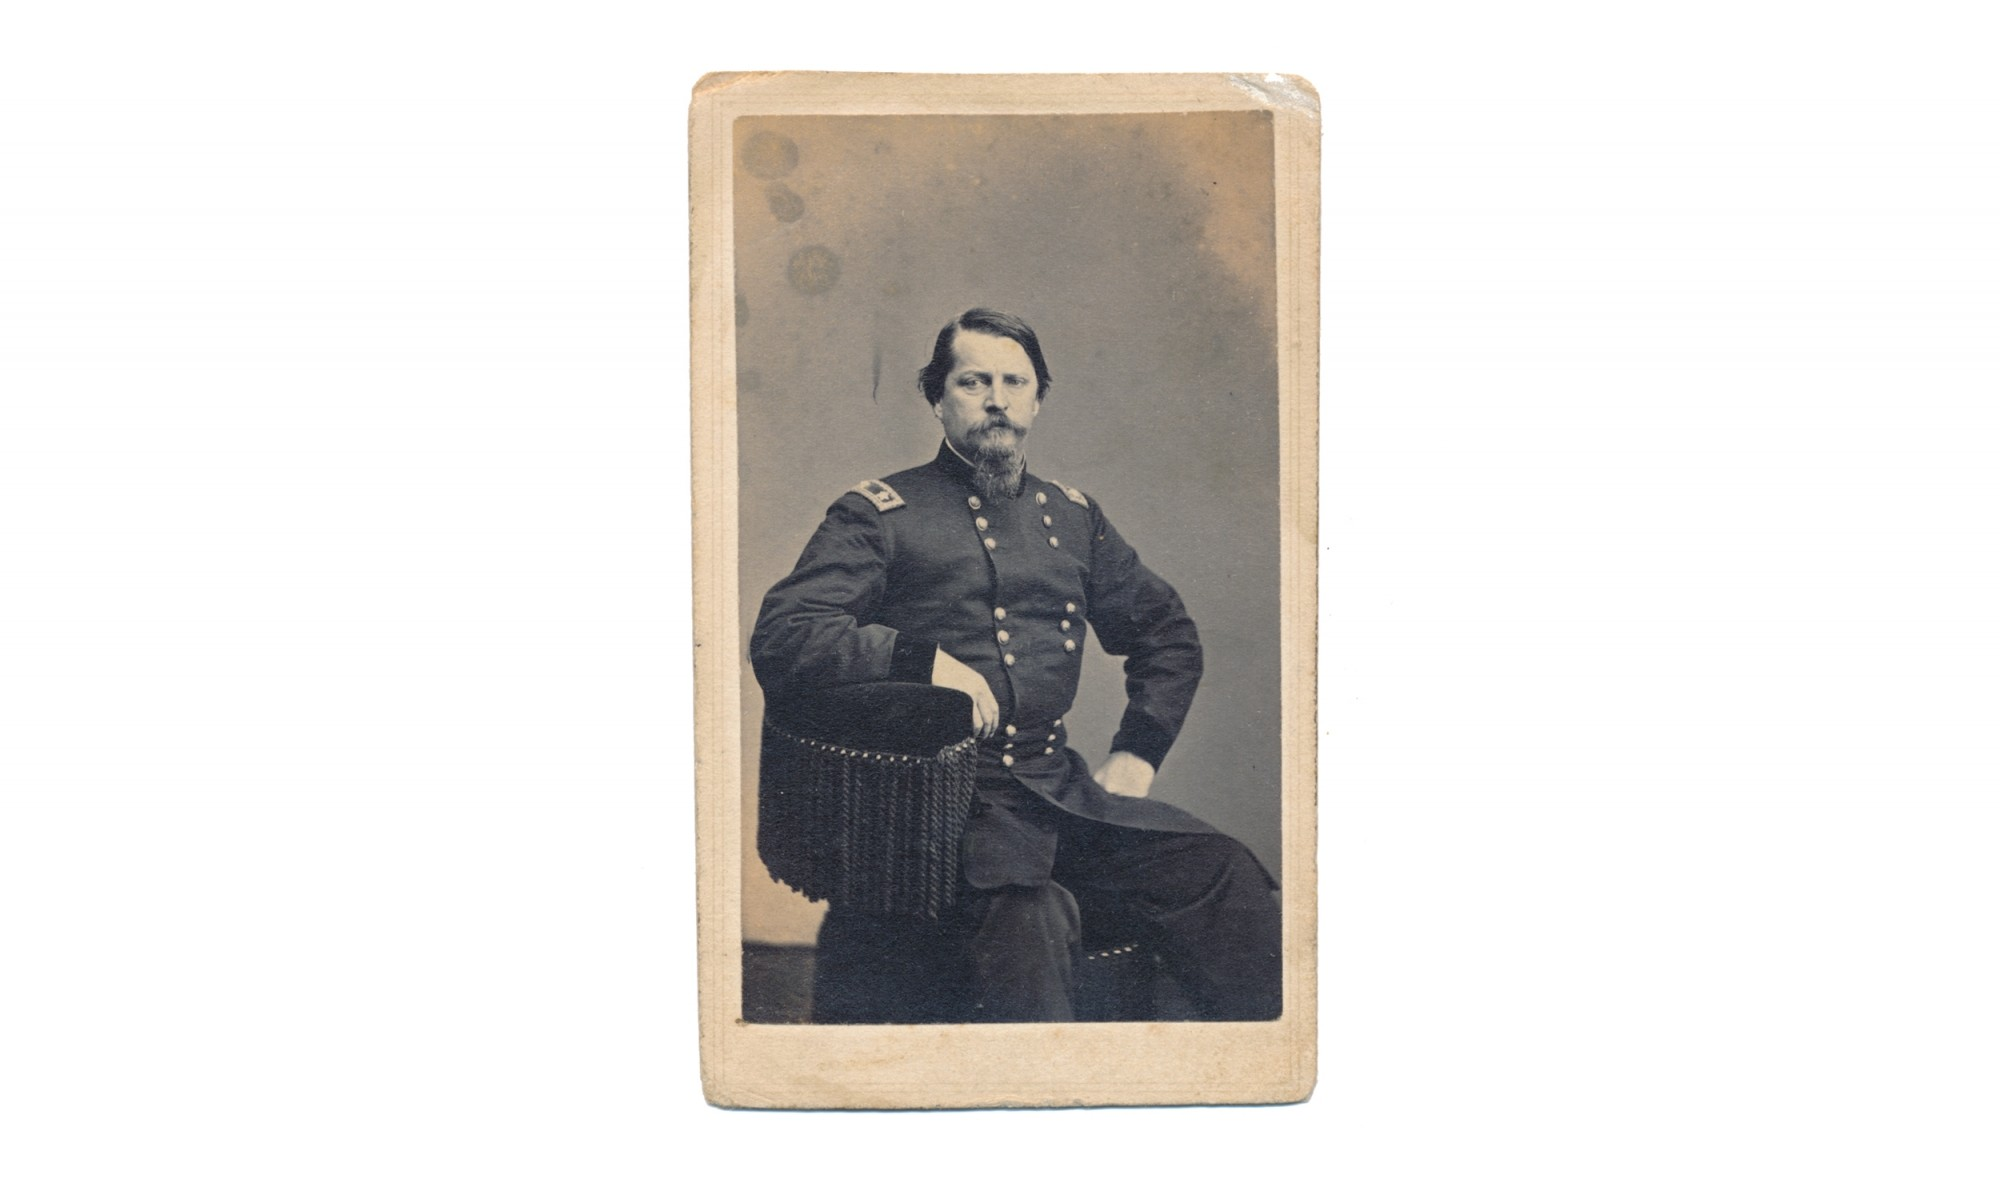 CDV RARE SEATED VIEW OF MAJOR GENERAL WINFIELD SCOTT HANCOCK